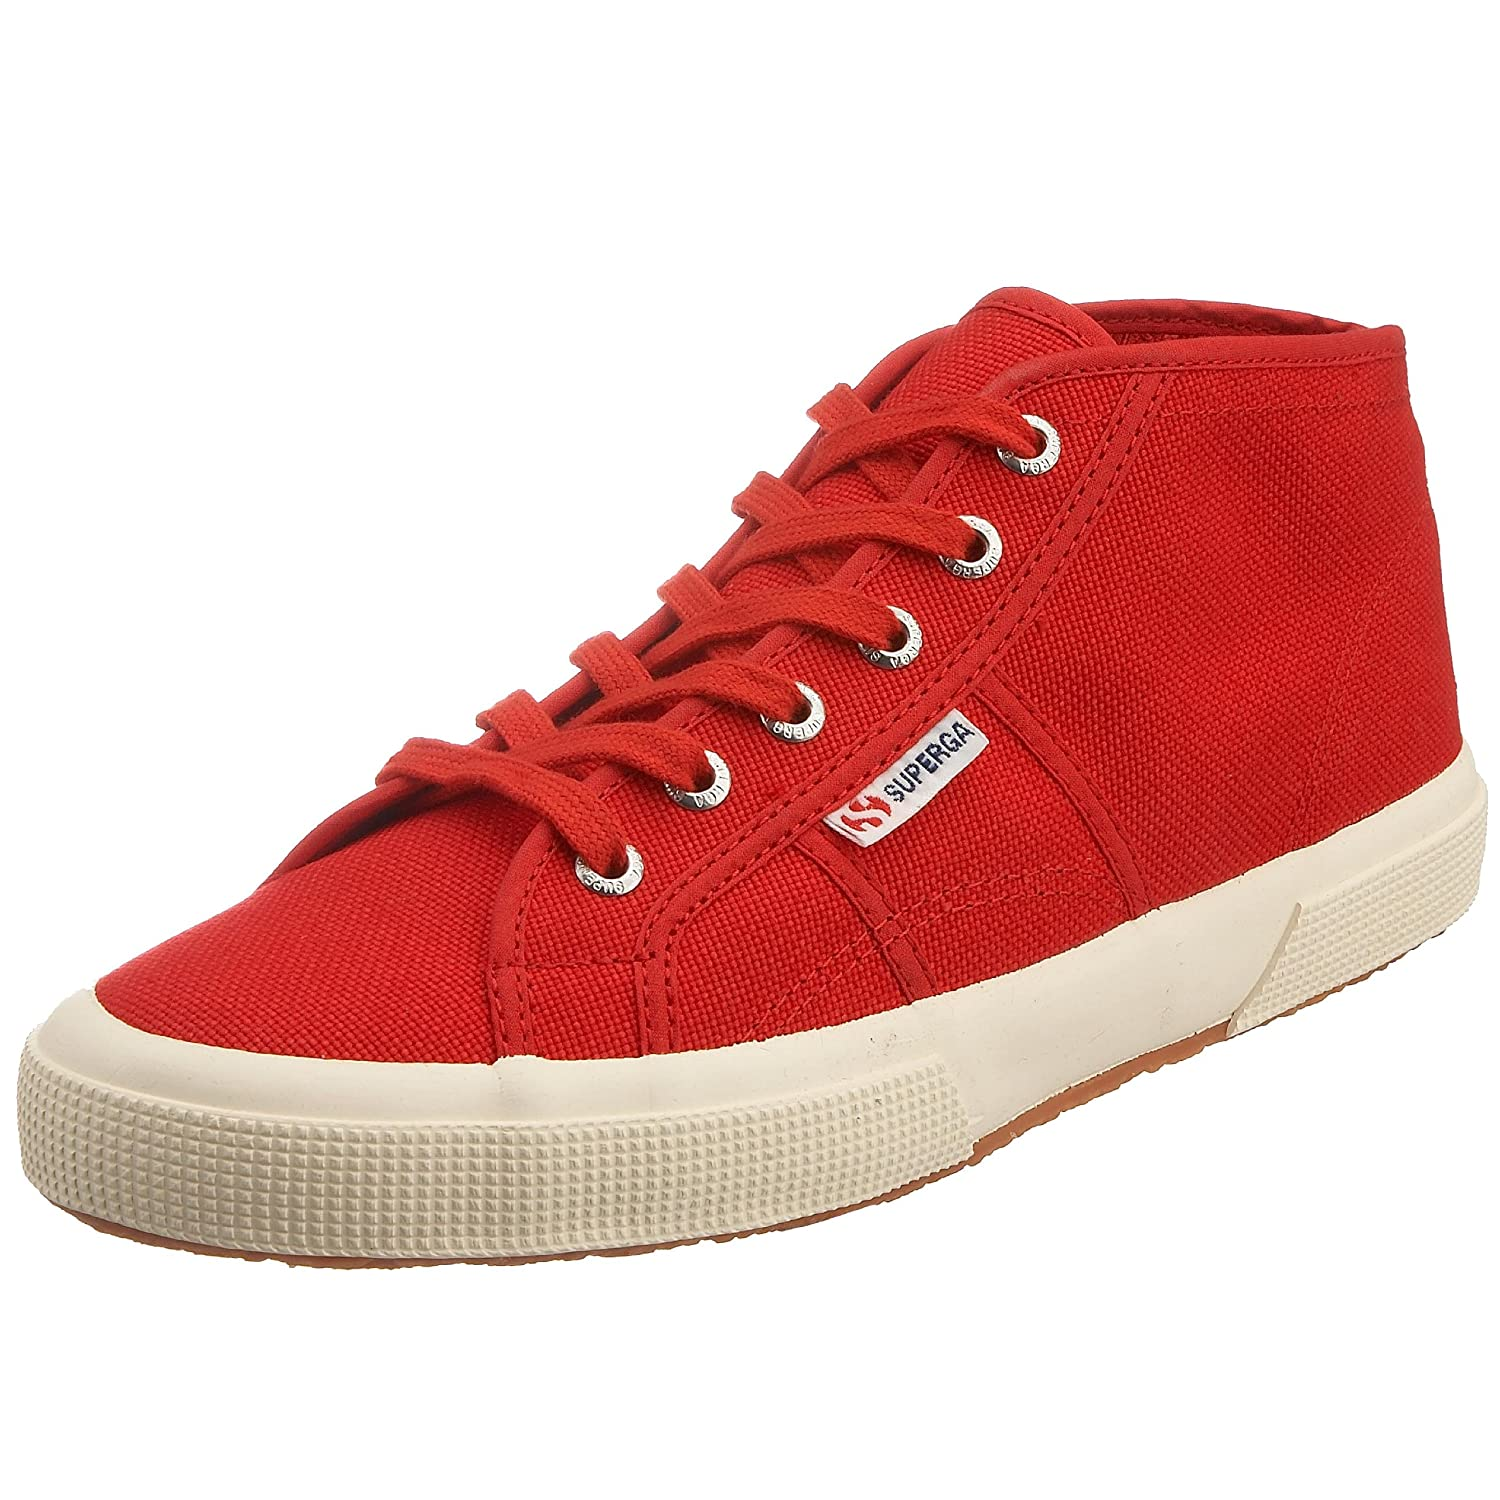 Superga 2754-cotu, Zapatillas Altas Unisex Adulto